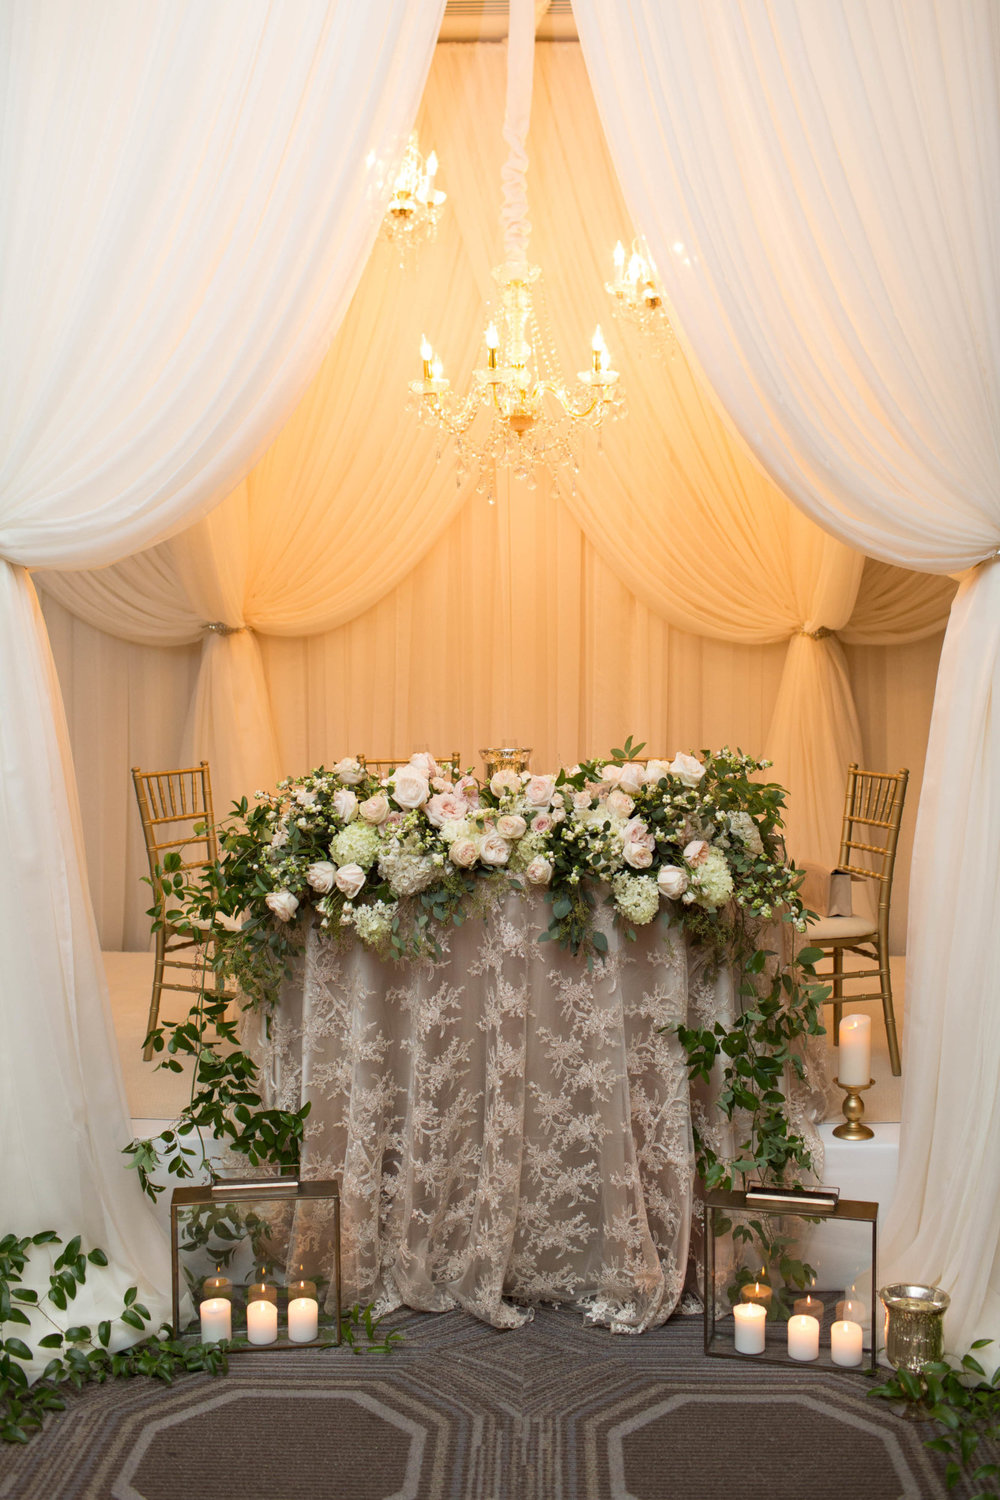 White Oaks Niagara Wedding Head Table Design Drapery Lanterns Candles Flowers Sweetheart Table